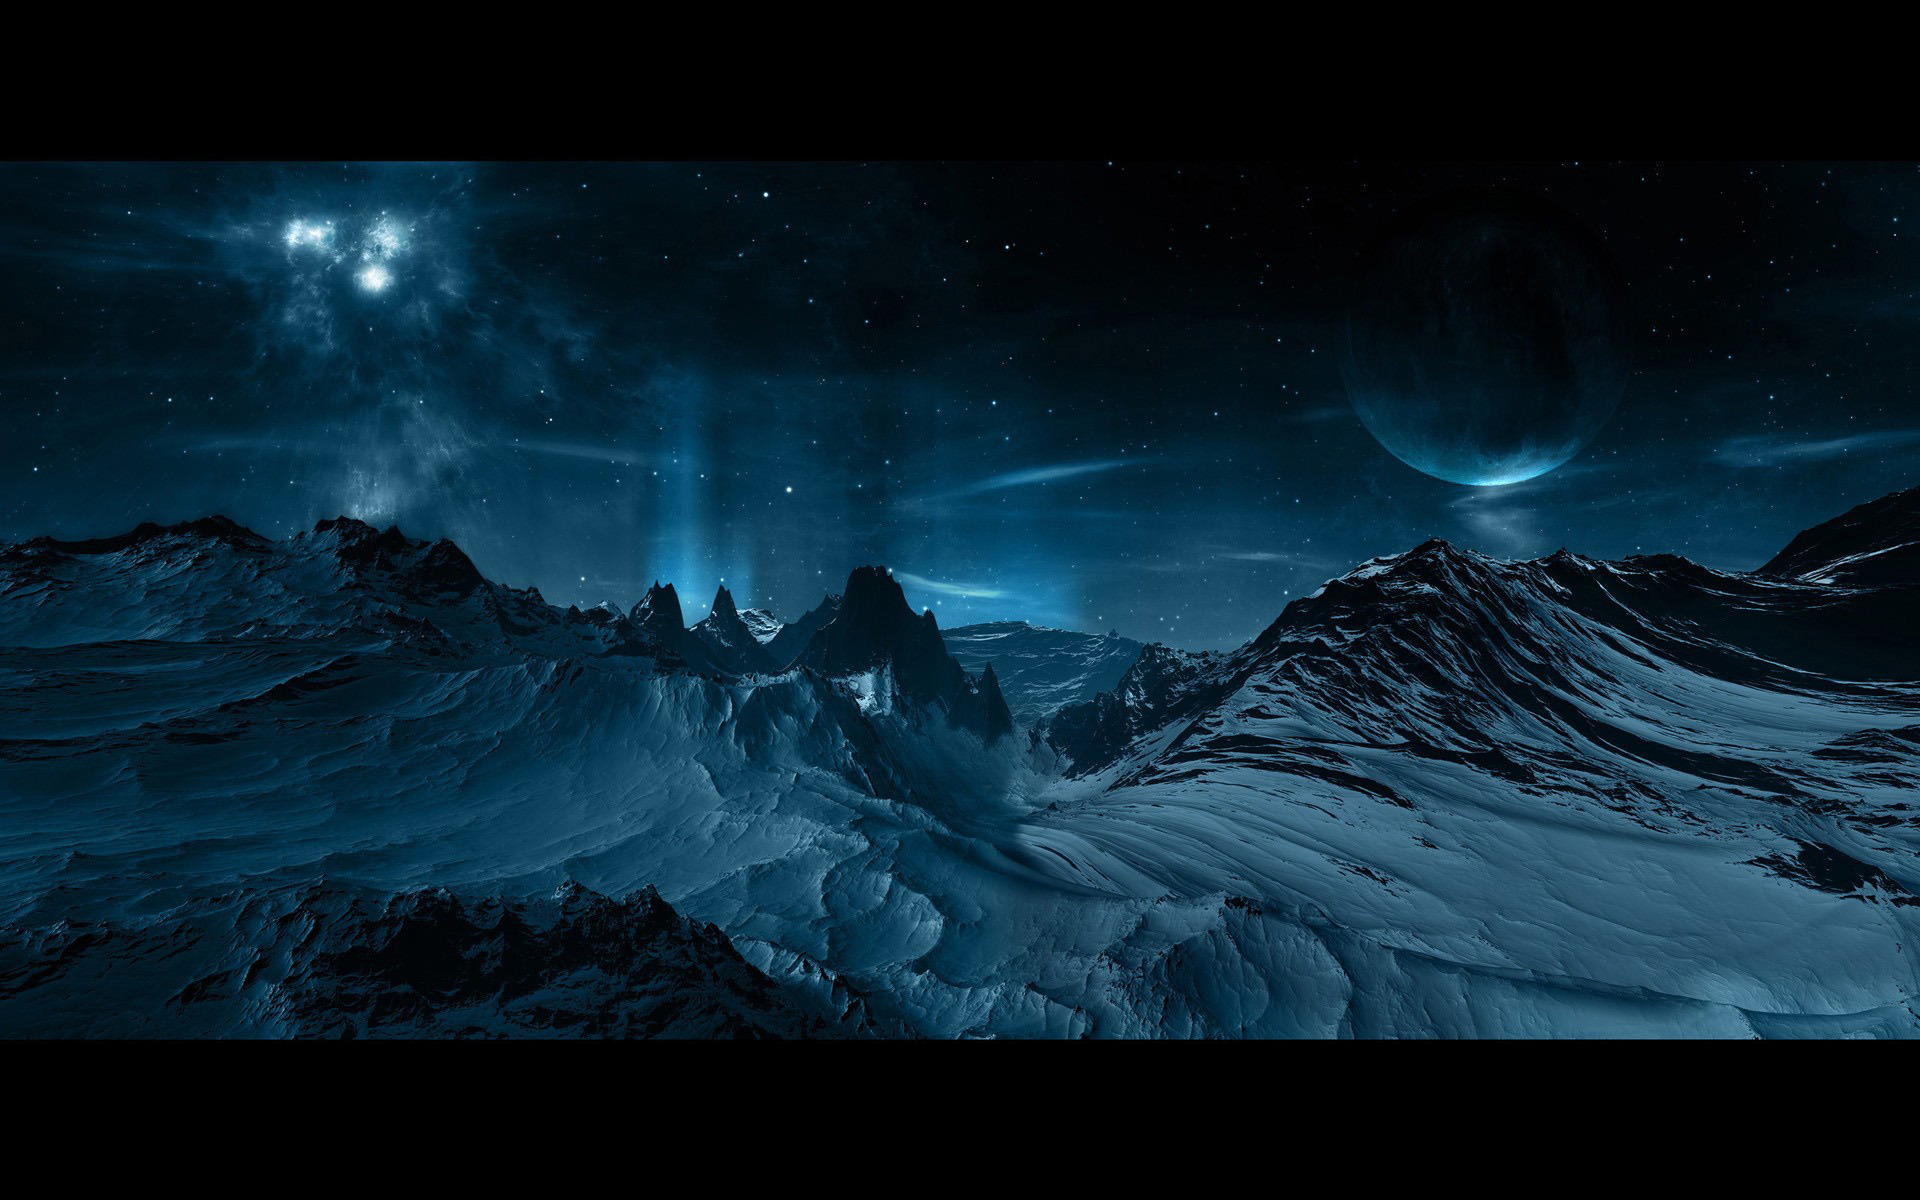 Planets above snowy mountains